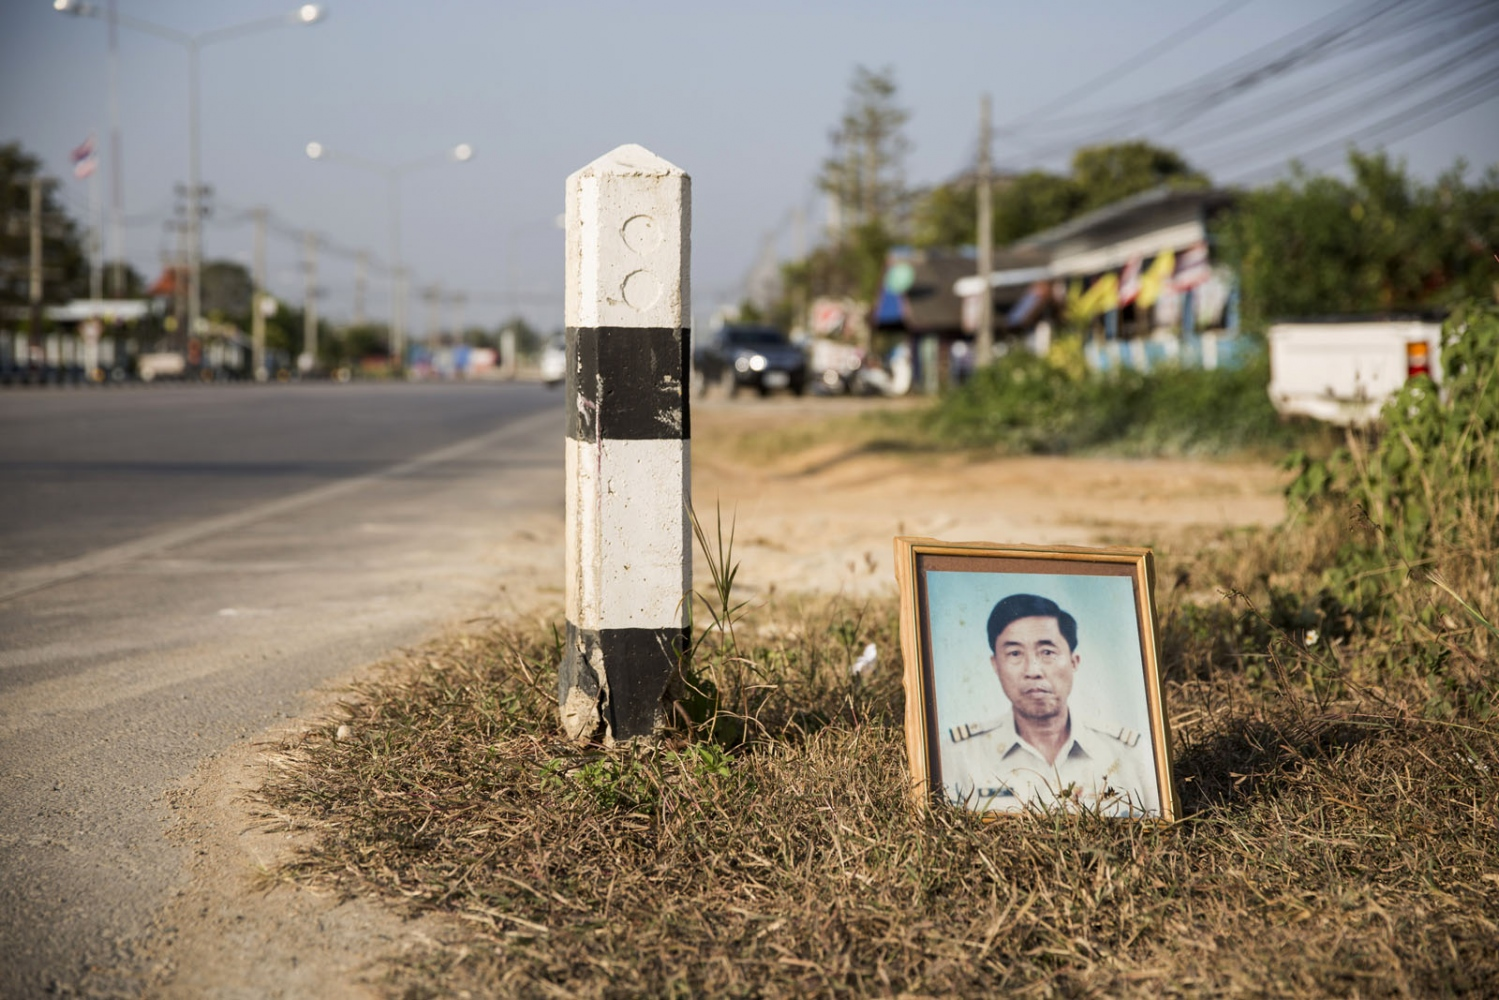 Kampan SUKSAI Mr Kampan Suksai was shot dead on the main road running through Pa Ngam village in Chiang Mai Province on the 20 December 2003. He was a village head who was opposing the encroachment into a nearby community forest.